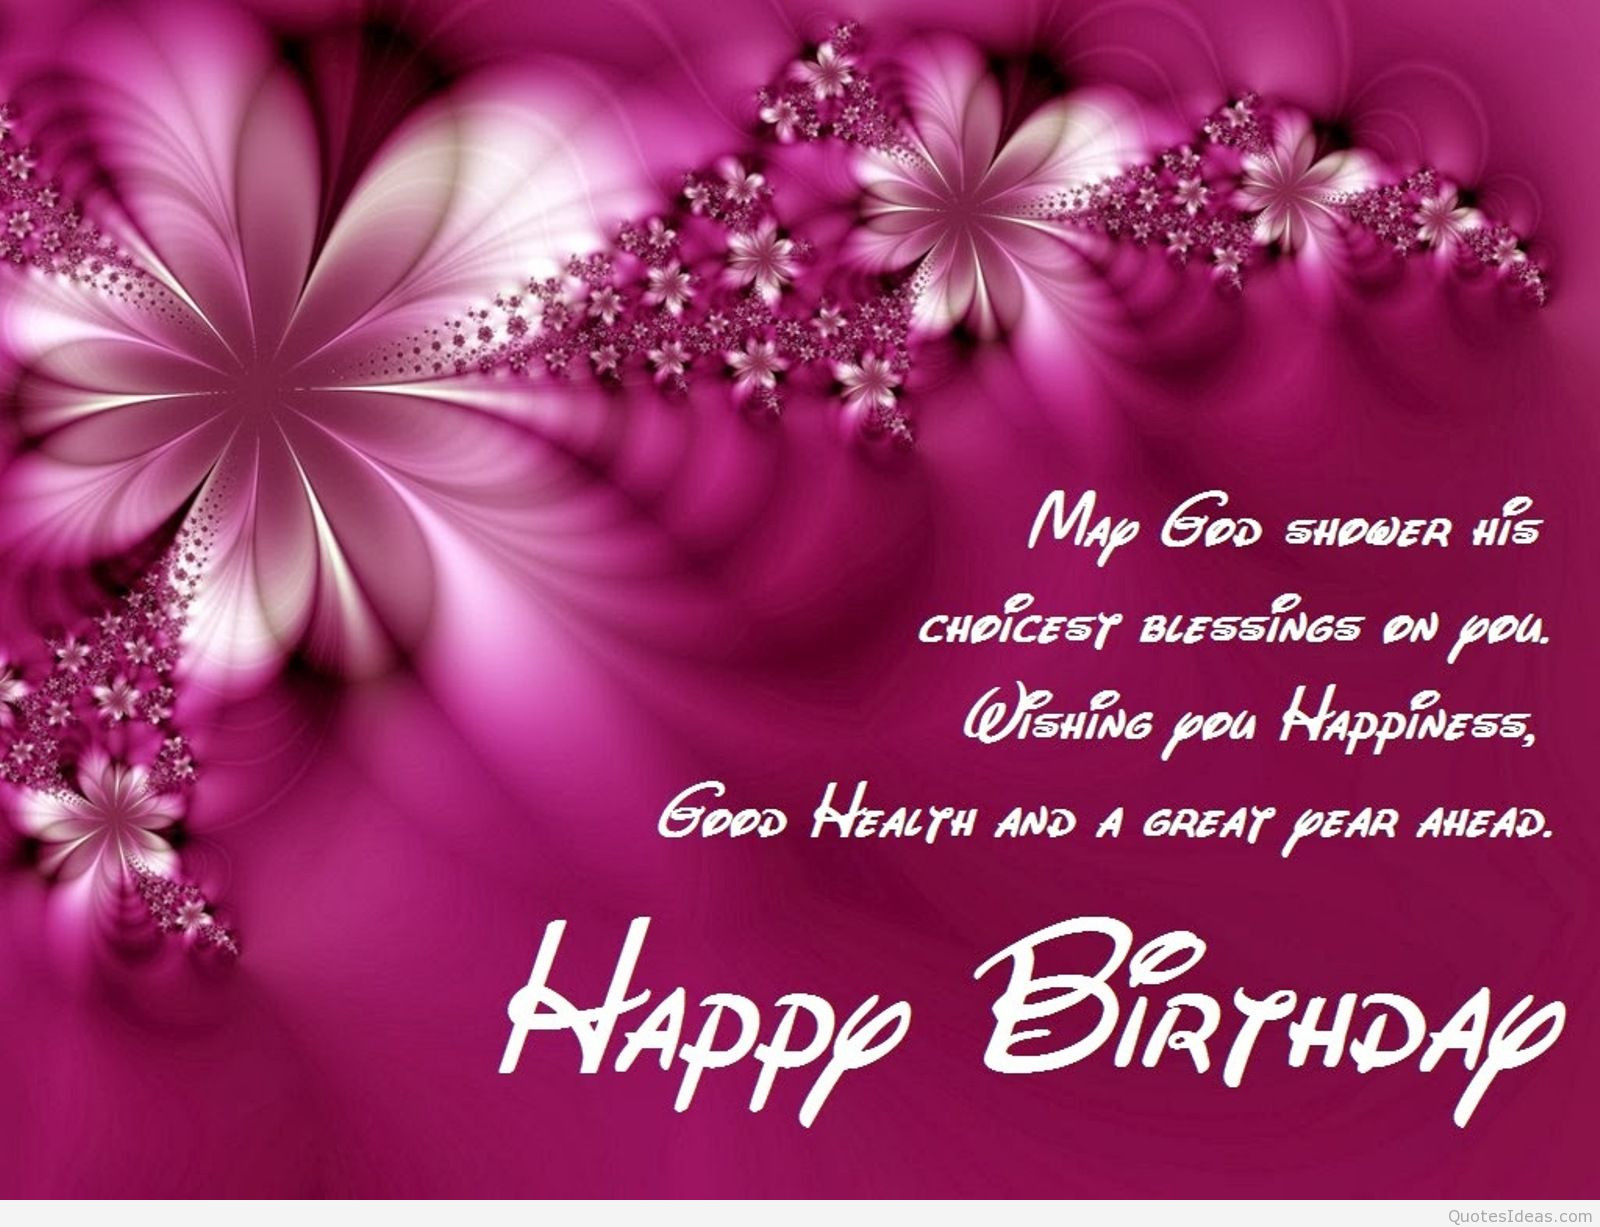 Quotes For A Sister Birthday  Happy Birthday Sister Quotes QuotesGram